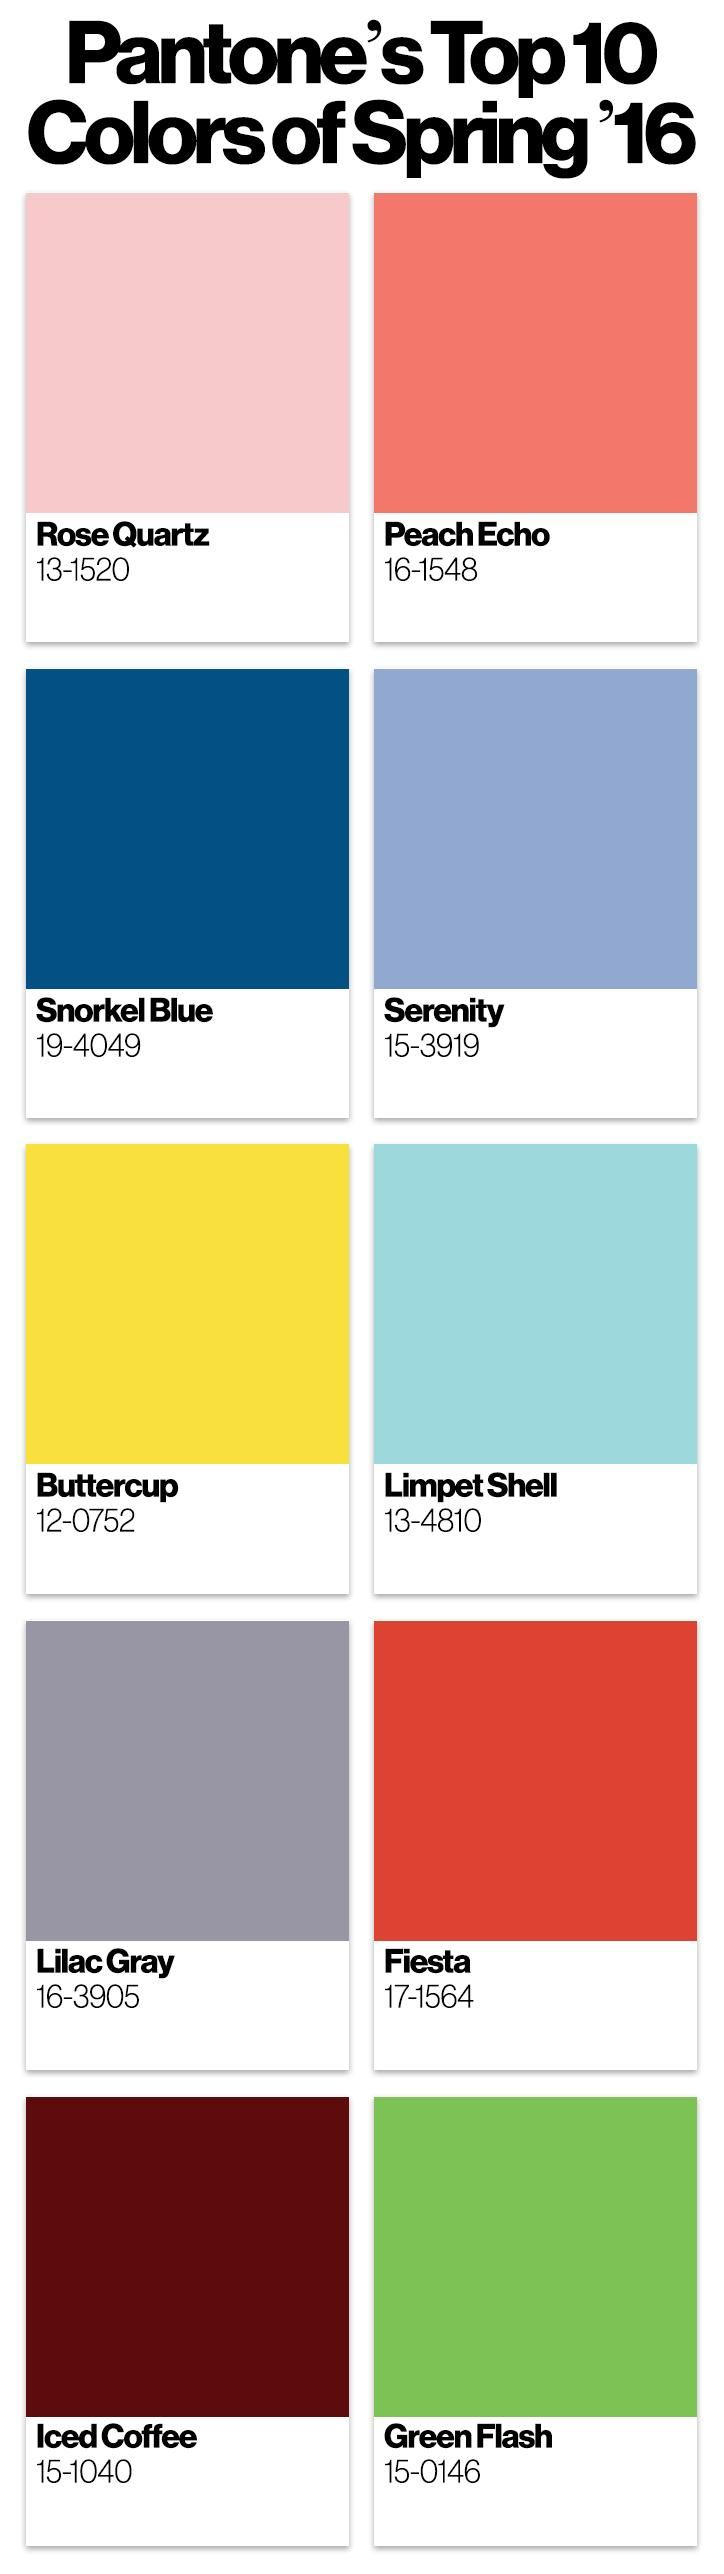 2016 color trends spring pantone color of the year snyder